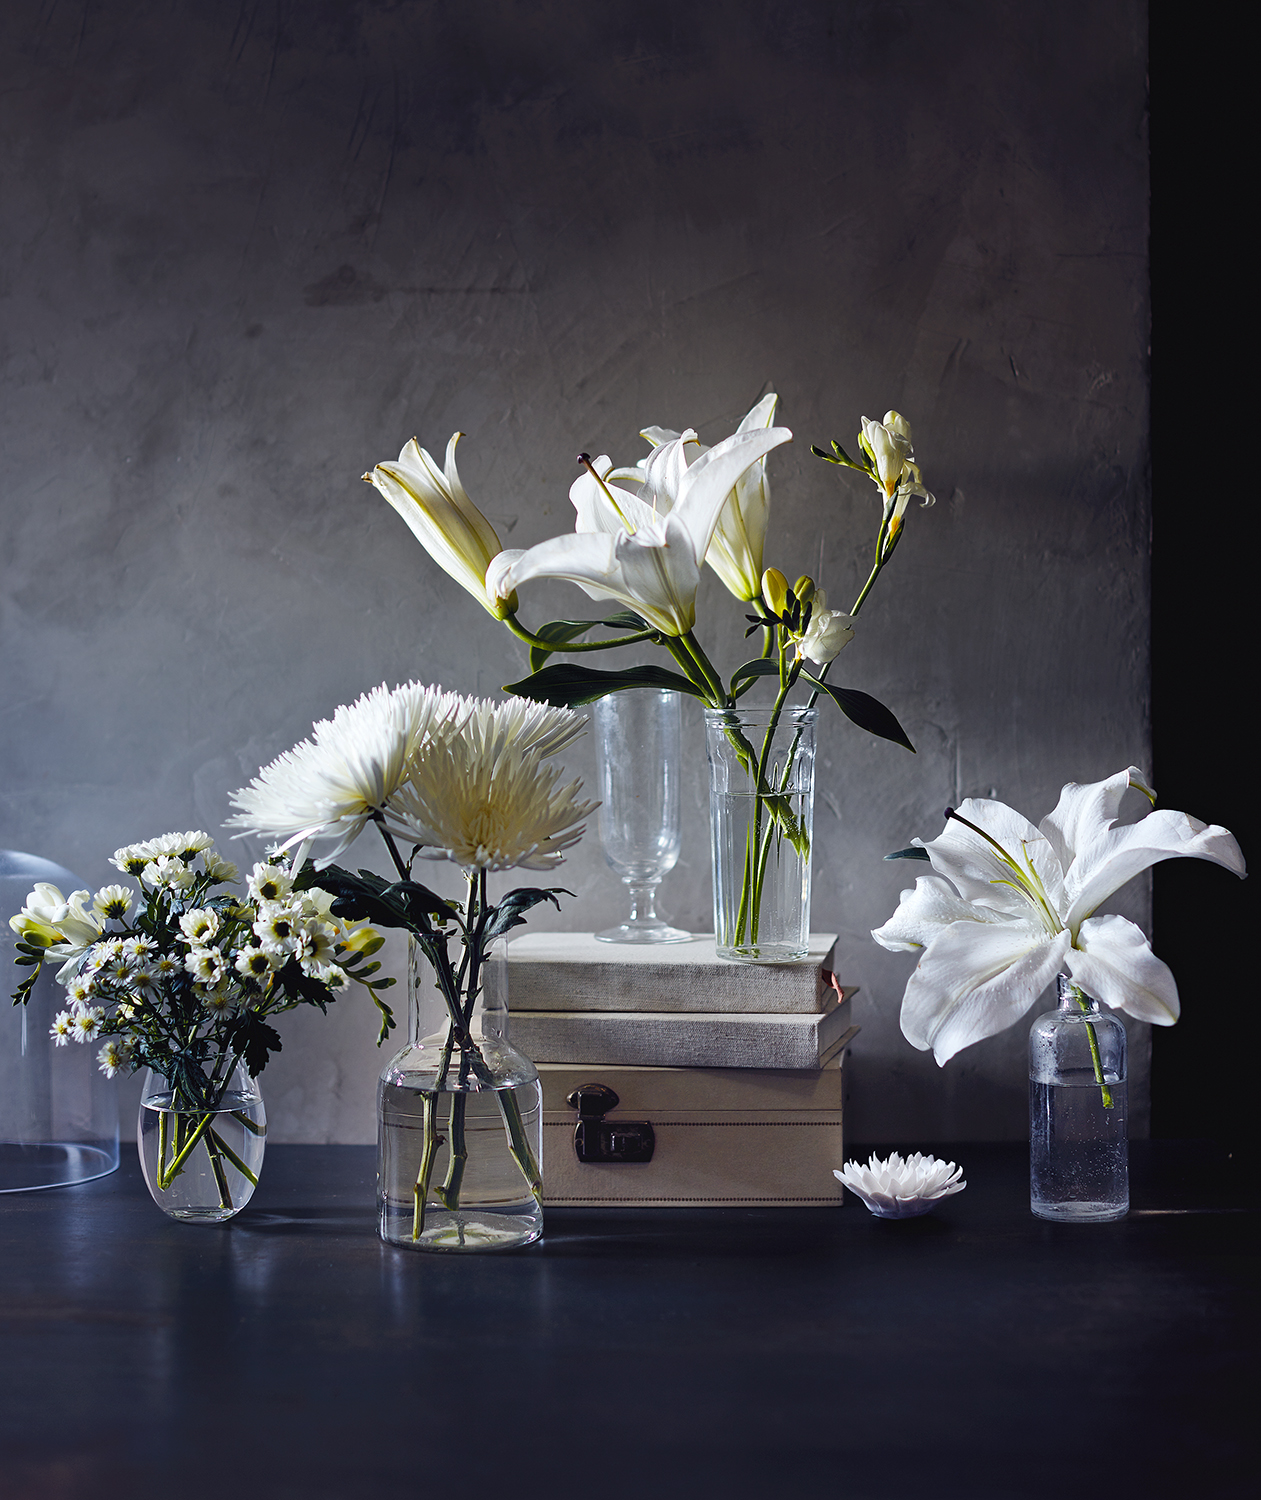 White flowers in vases